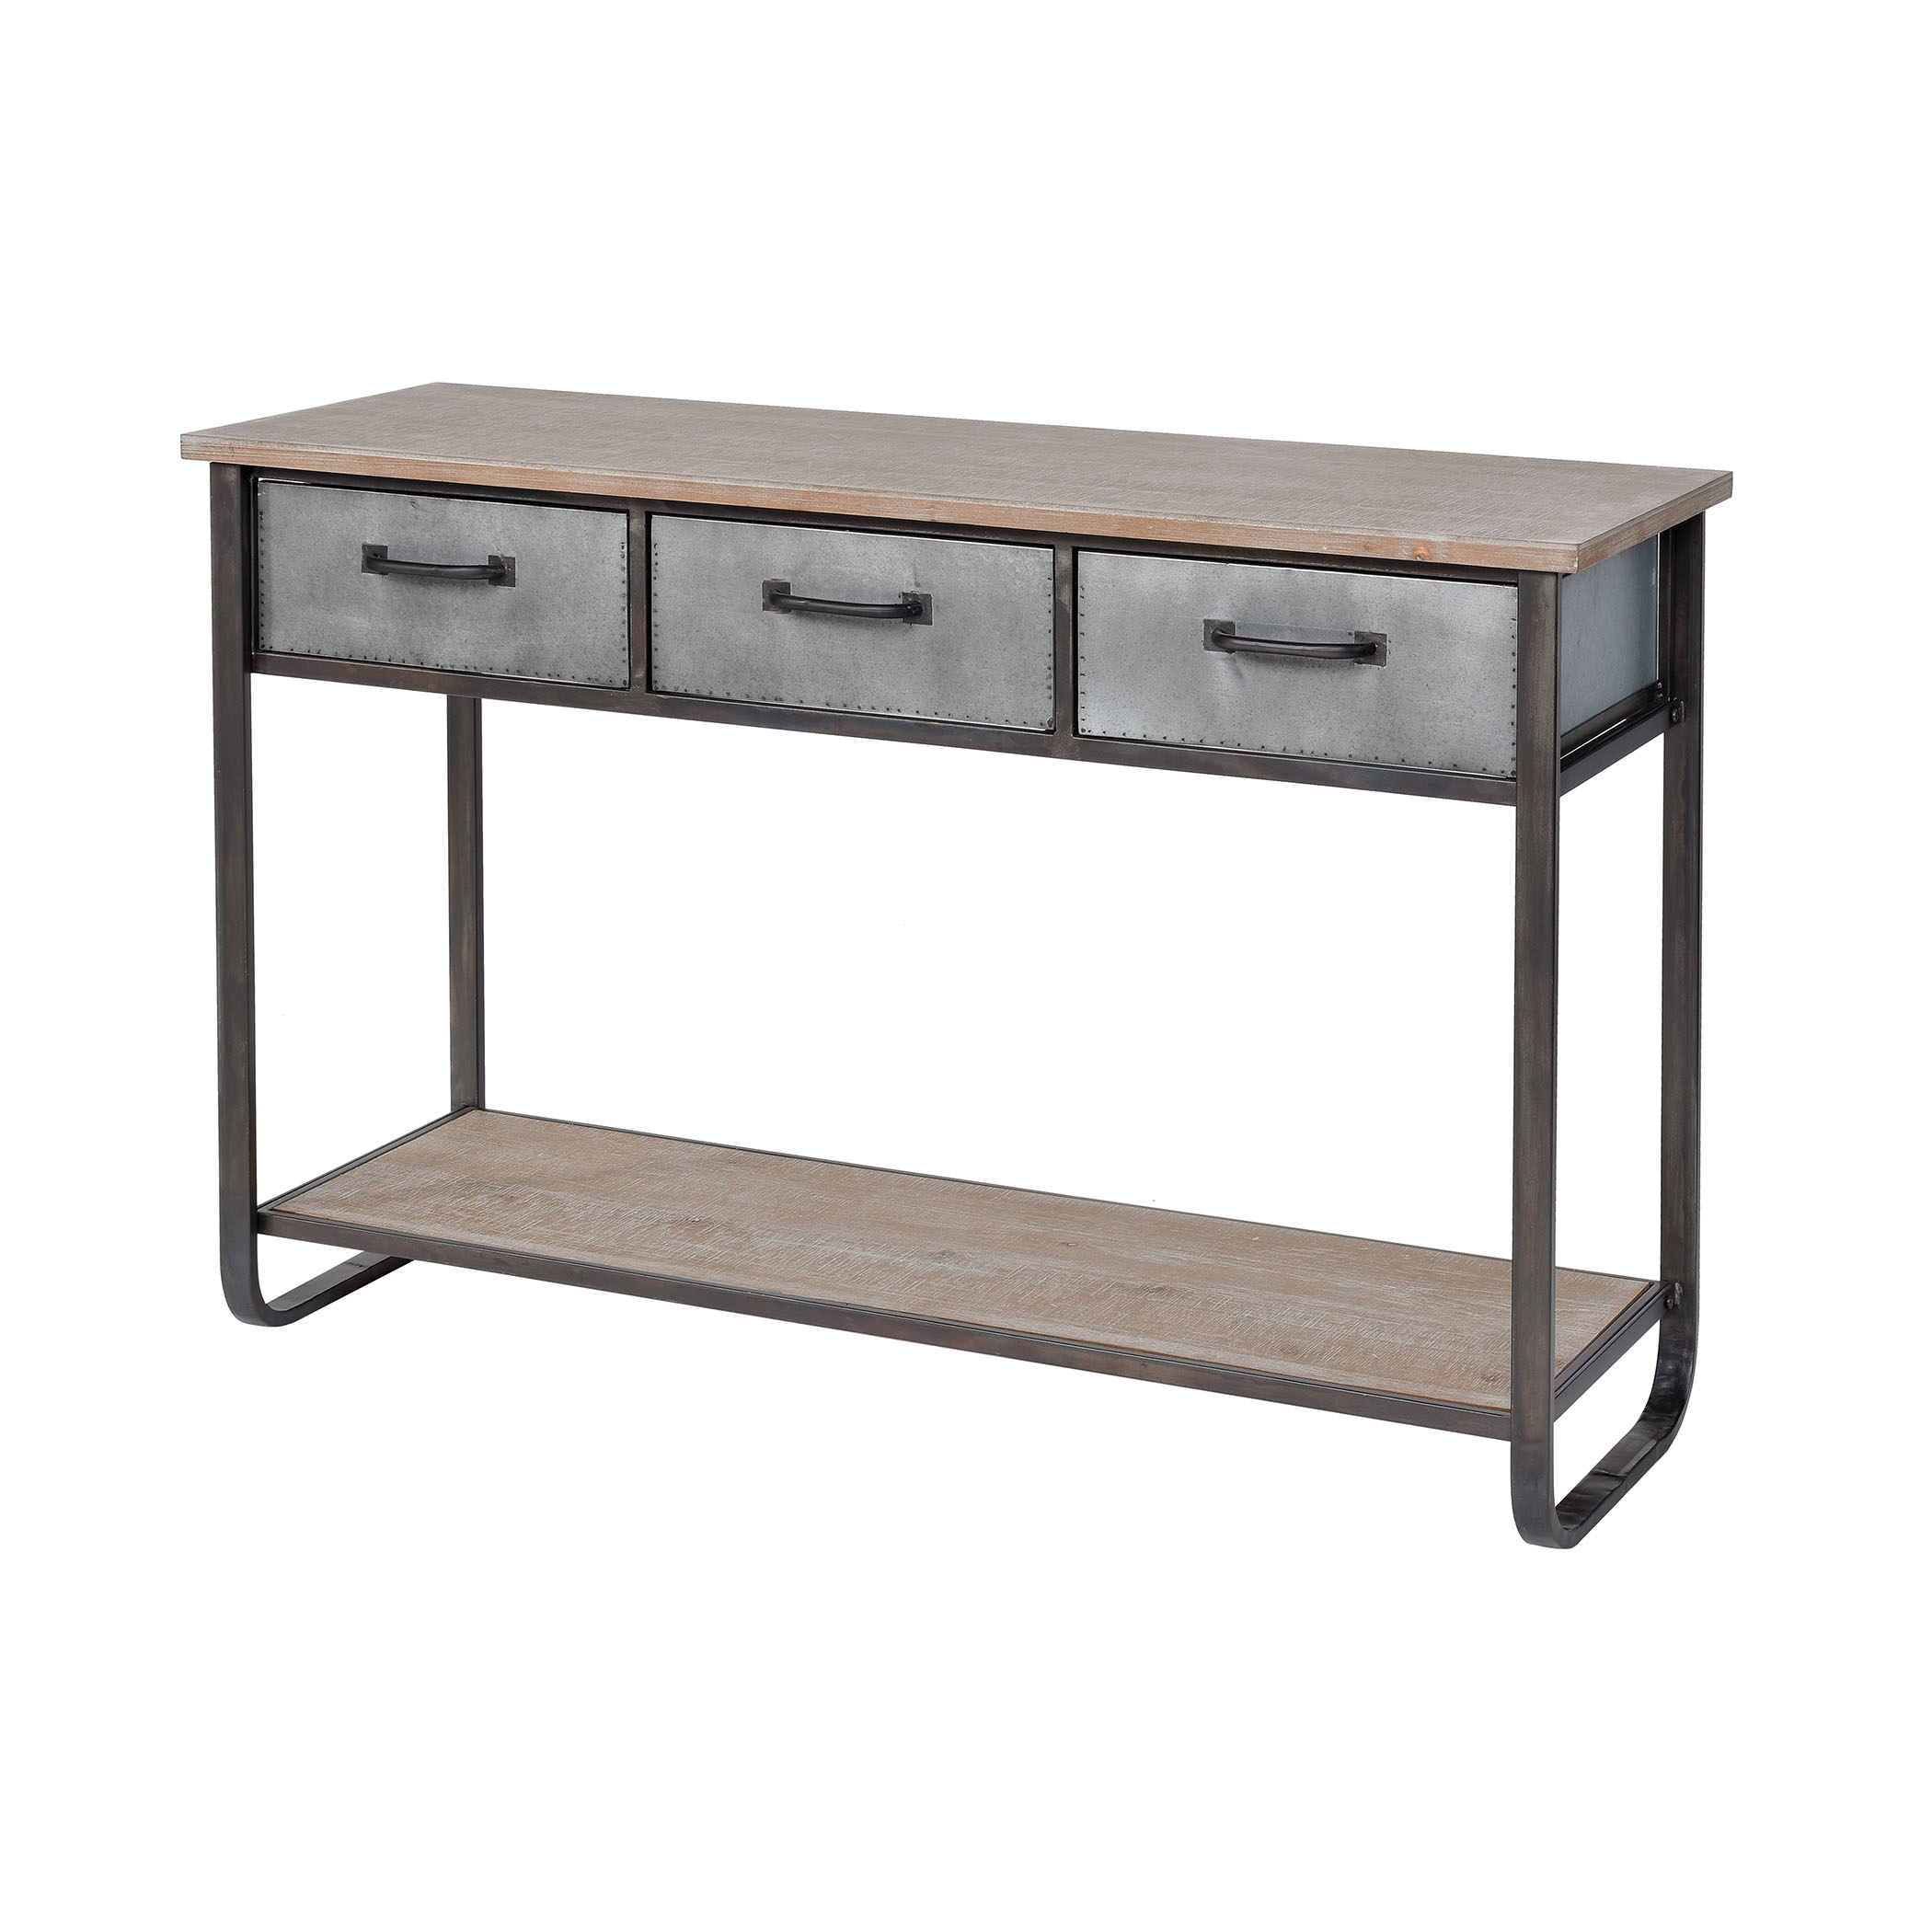 Whitepark Bay Console in Natural Fir Wood and Galvanized Steel Medium | Elk Home